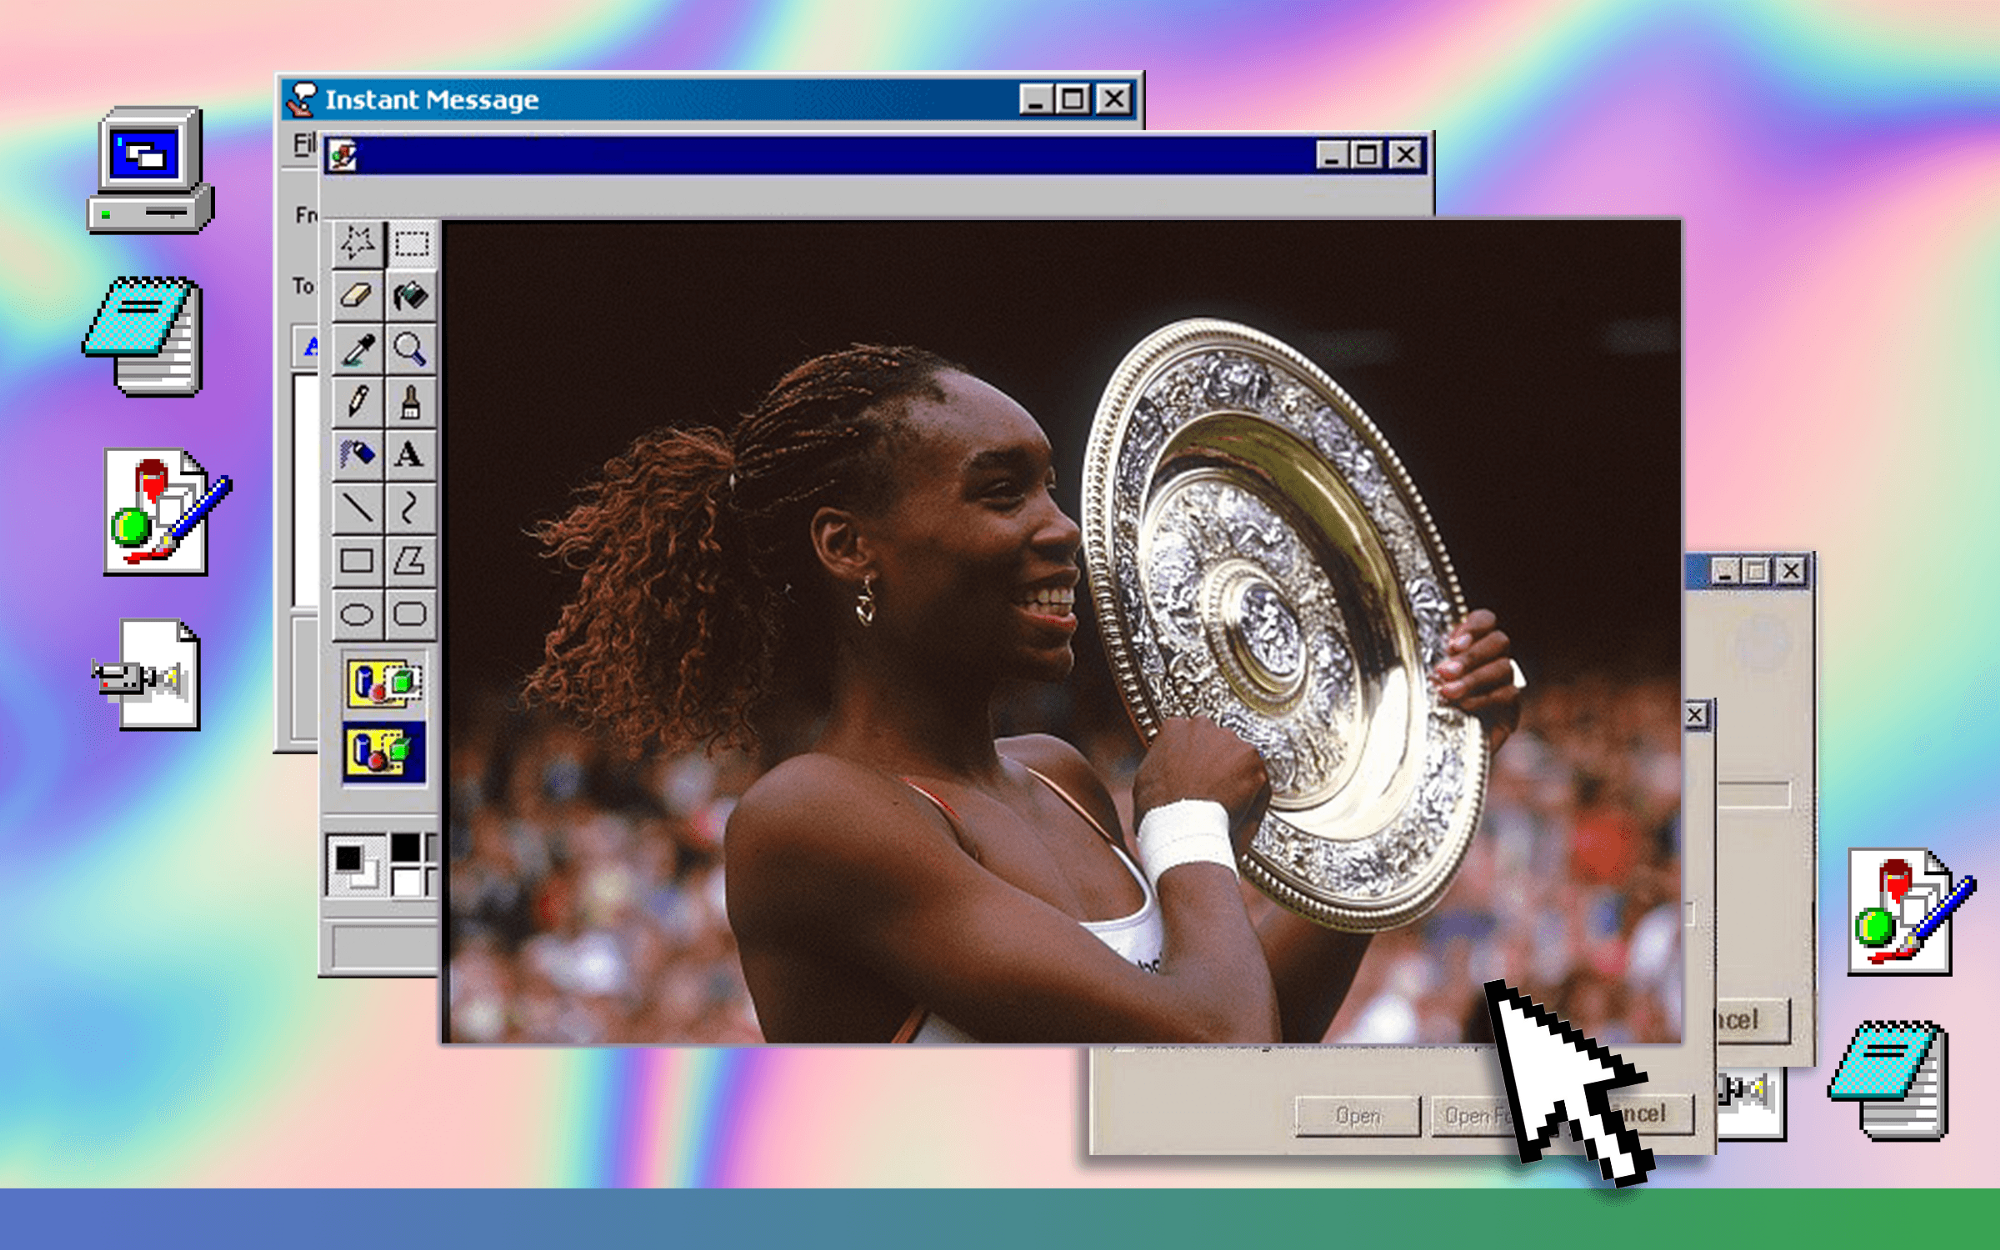 Venus Williams holding her Wimbledon trophy in 2000 on a Windows 95 desktop with a rainbow gradient background.